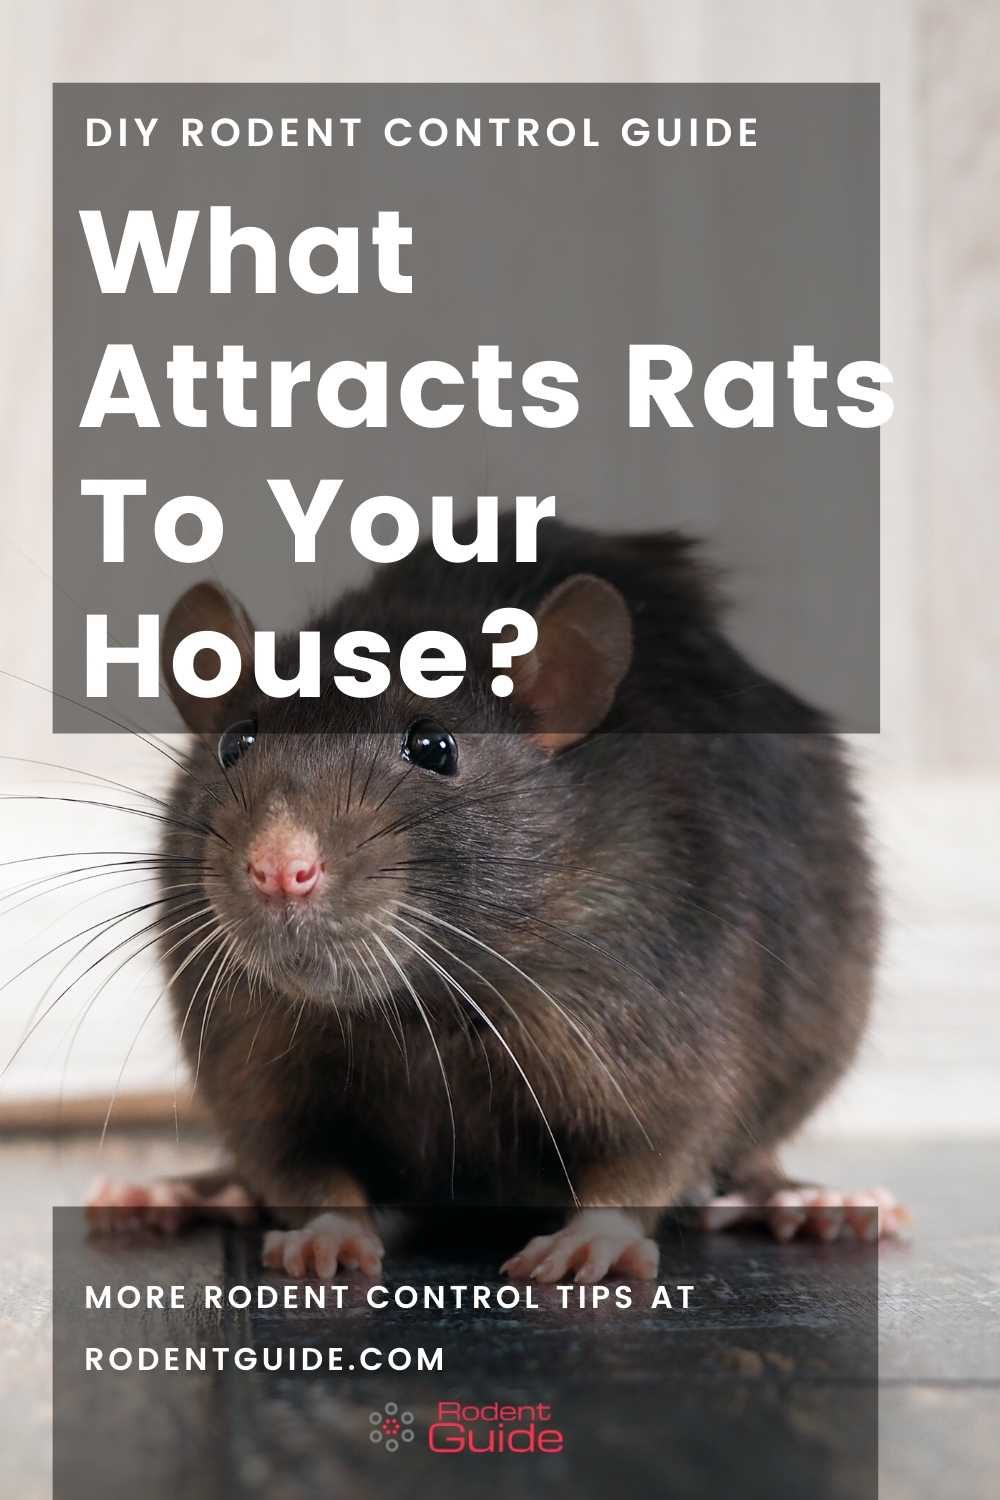 What Attracts Rats To Your House